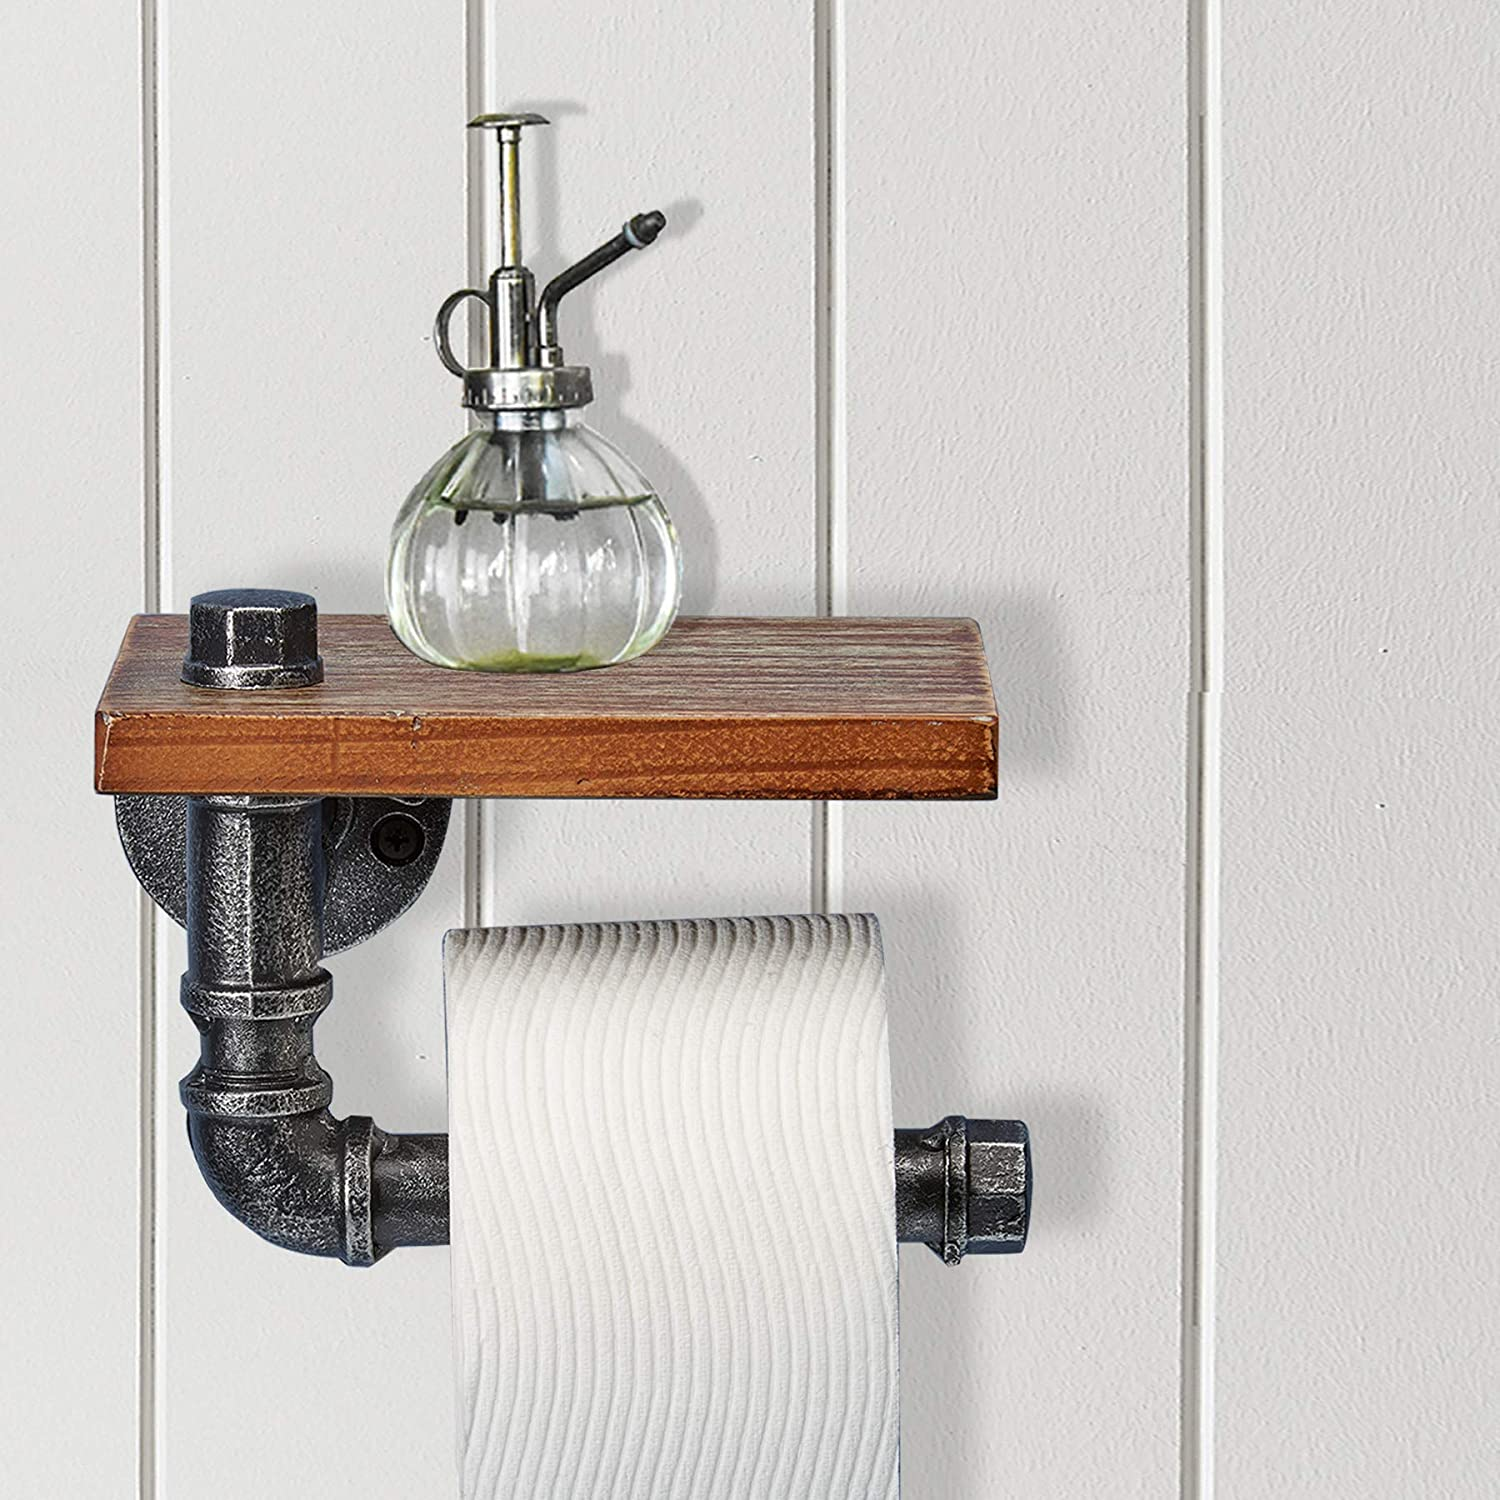 "Rustic Vintage Decorative Toilet Roll Holder with Shelf 8/"" x 6/"" Barnyard Designs Industrial Wall Mounted Toilet Paper Holder with Shelf"